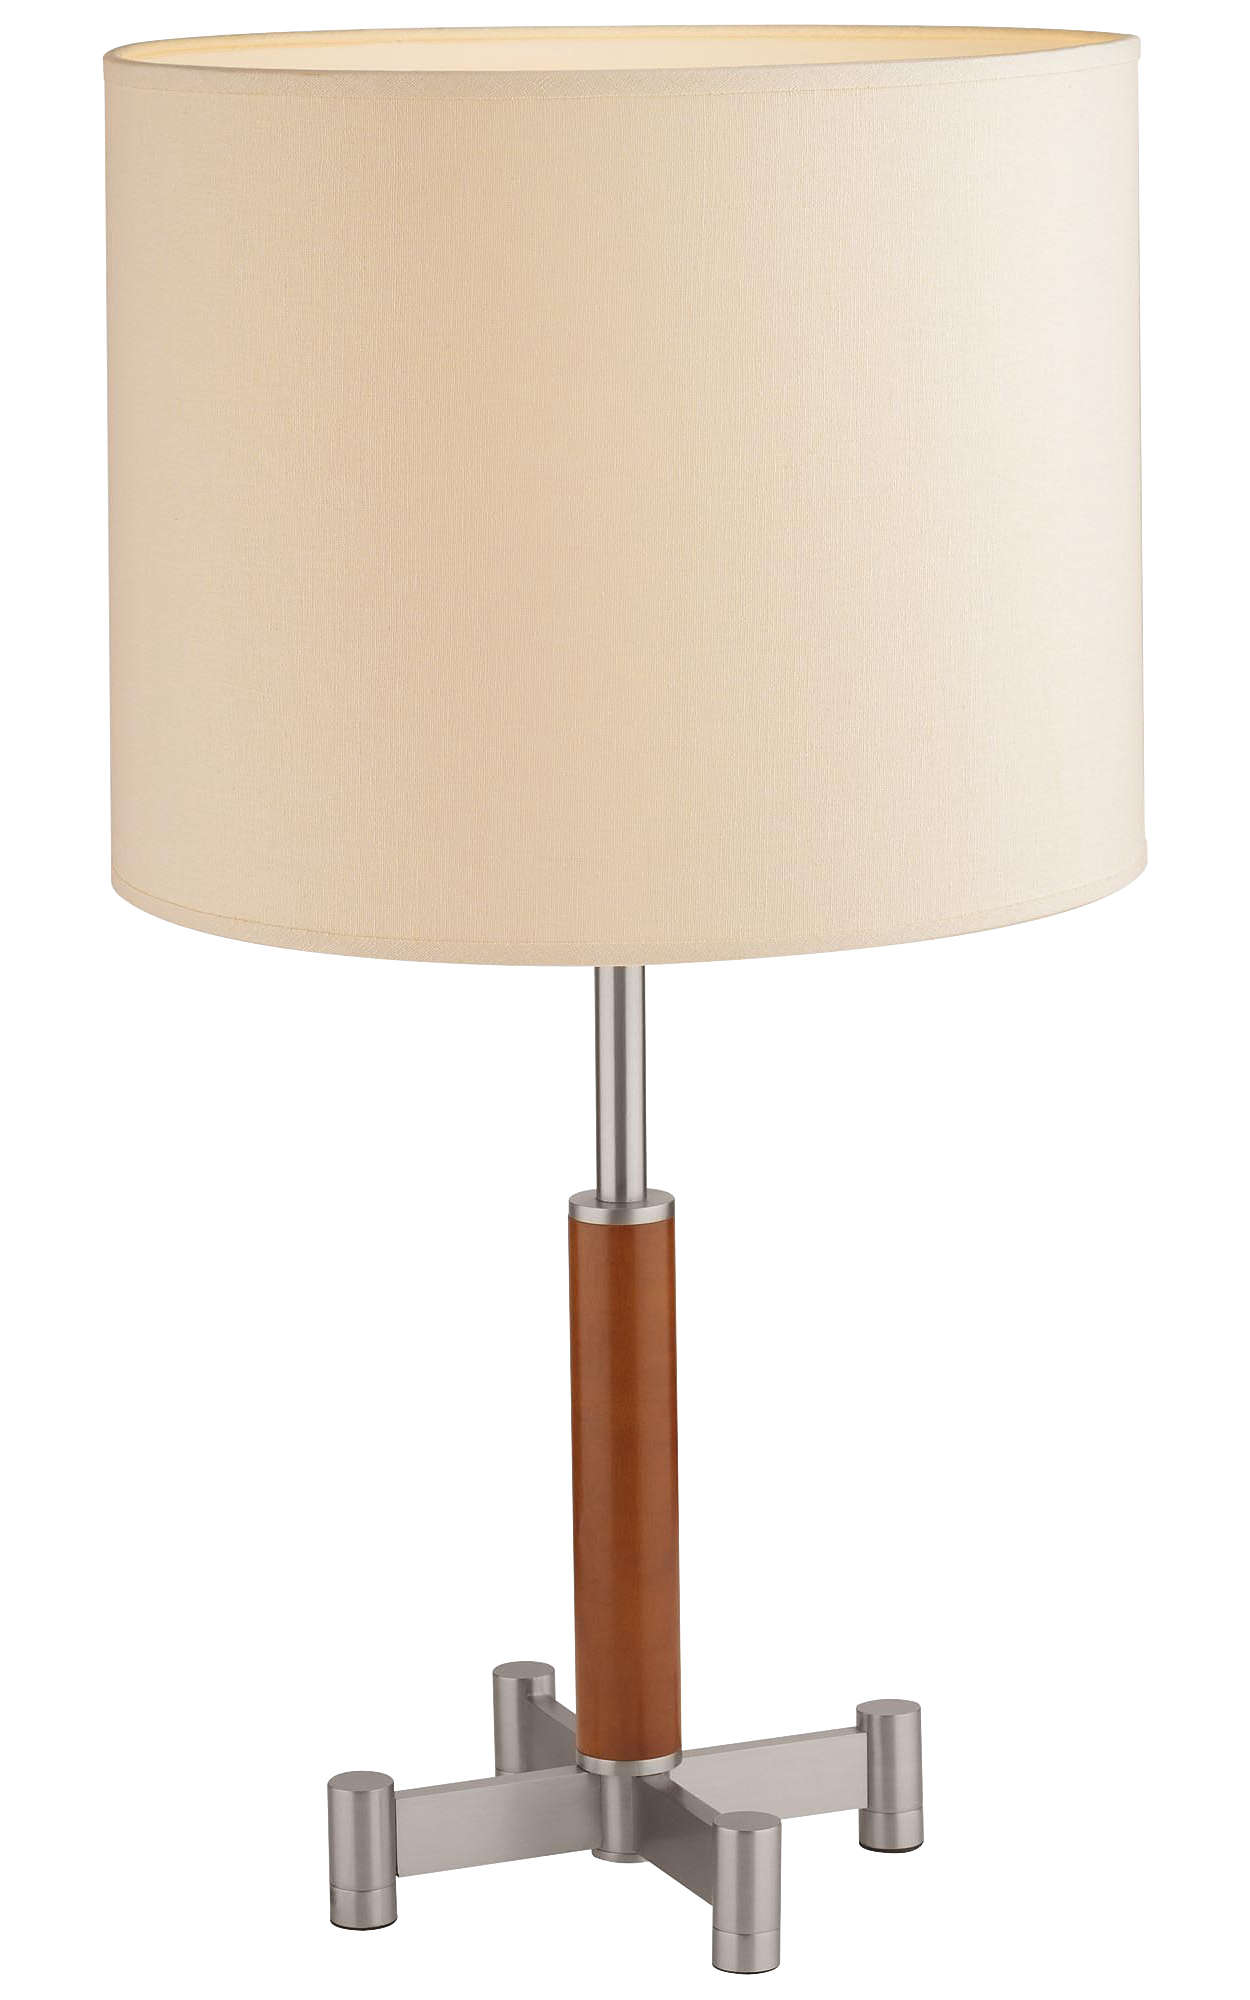 Embarcadero 1-light Table Lamp, Satin Nickel